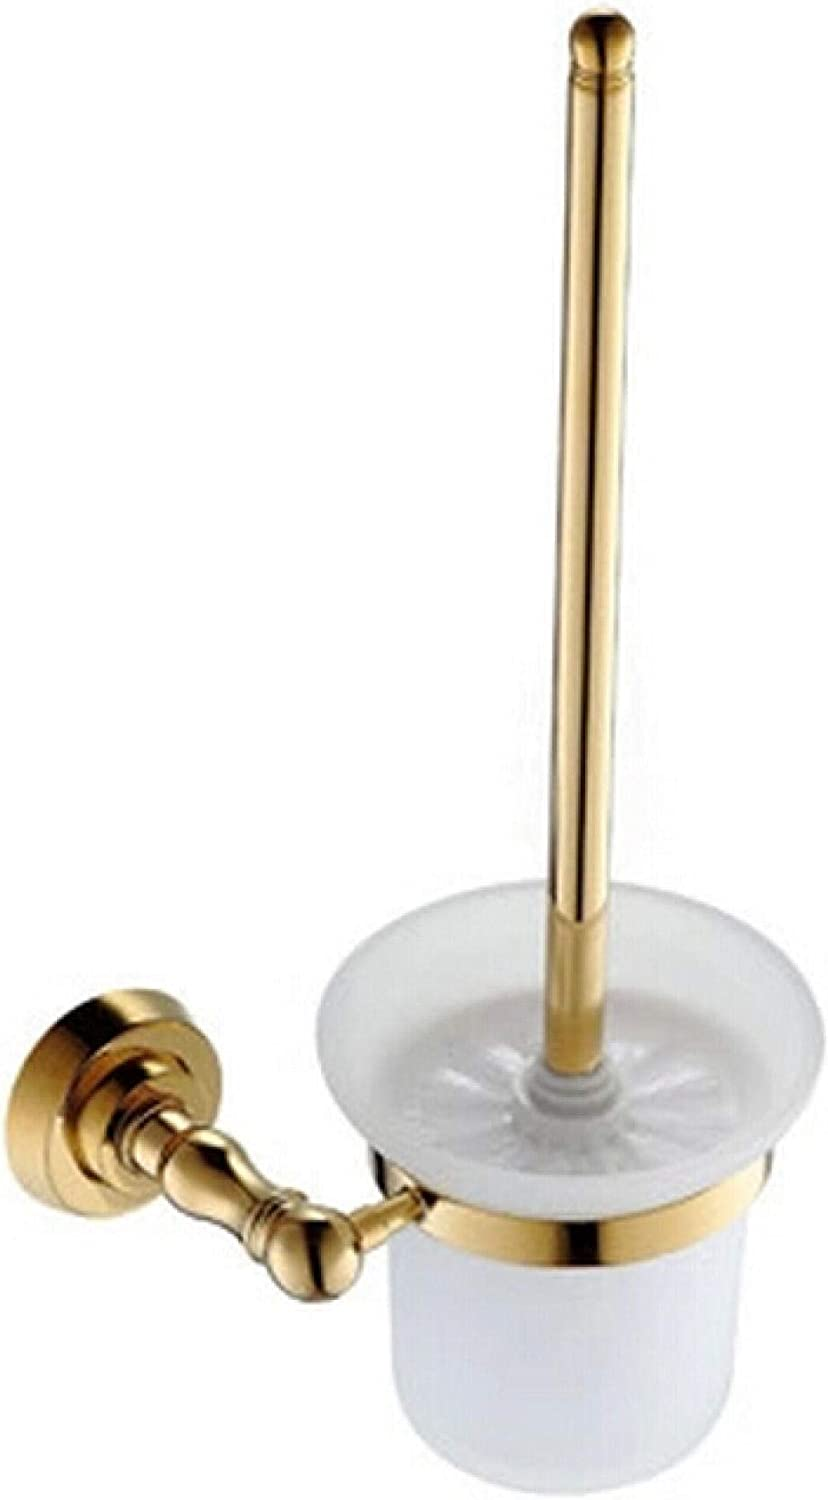 Spring new work LIMEI-ZEN Max 65% OFF Gold Finish Bath Bathroom Brush Cup Hol Suction Toilet